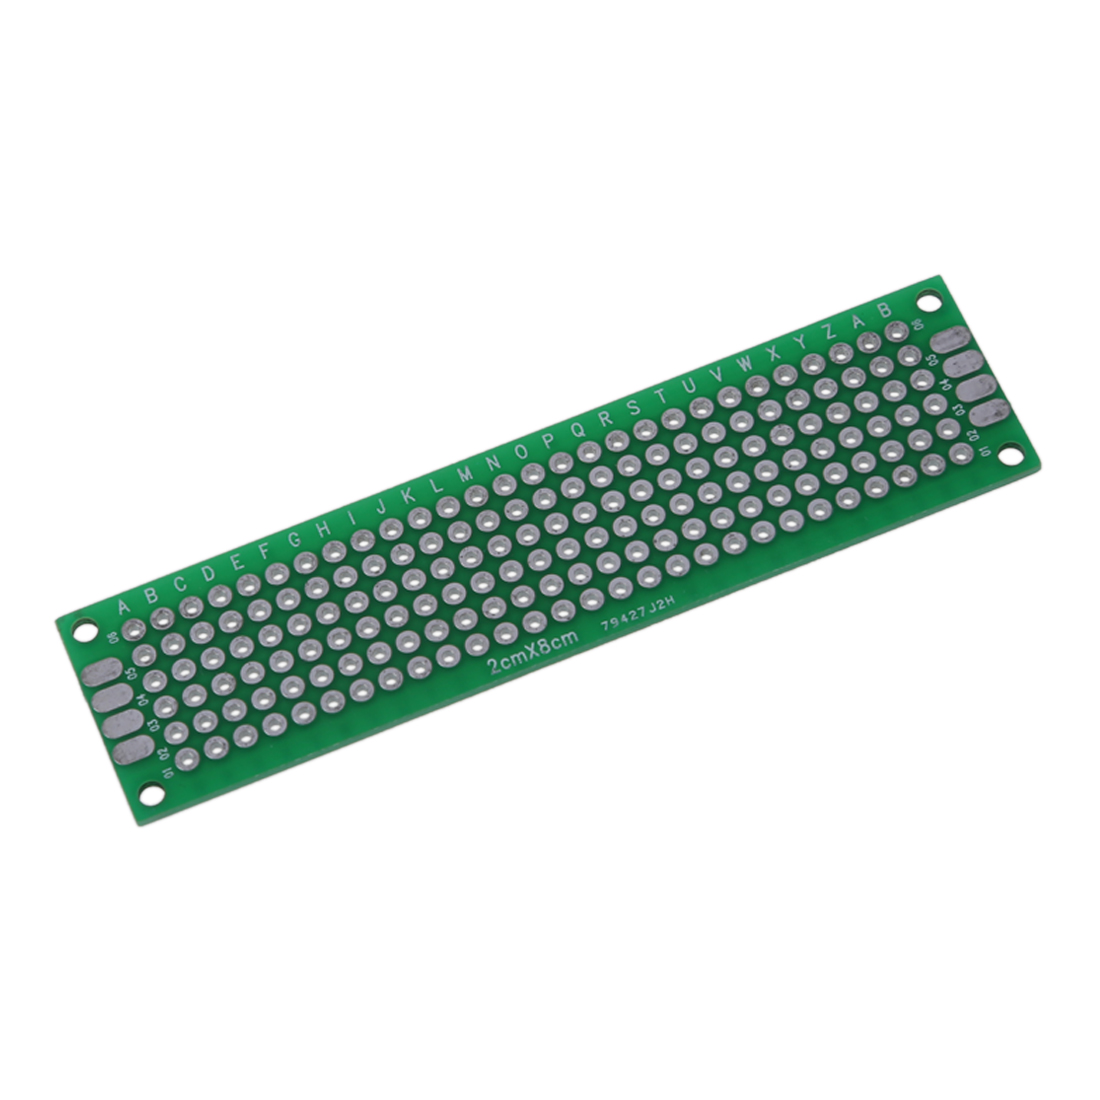 4pcs-Double-Side-Prototype-Universal-Printed-Circuit-Board-2-8cm-Size-B8L9